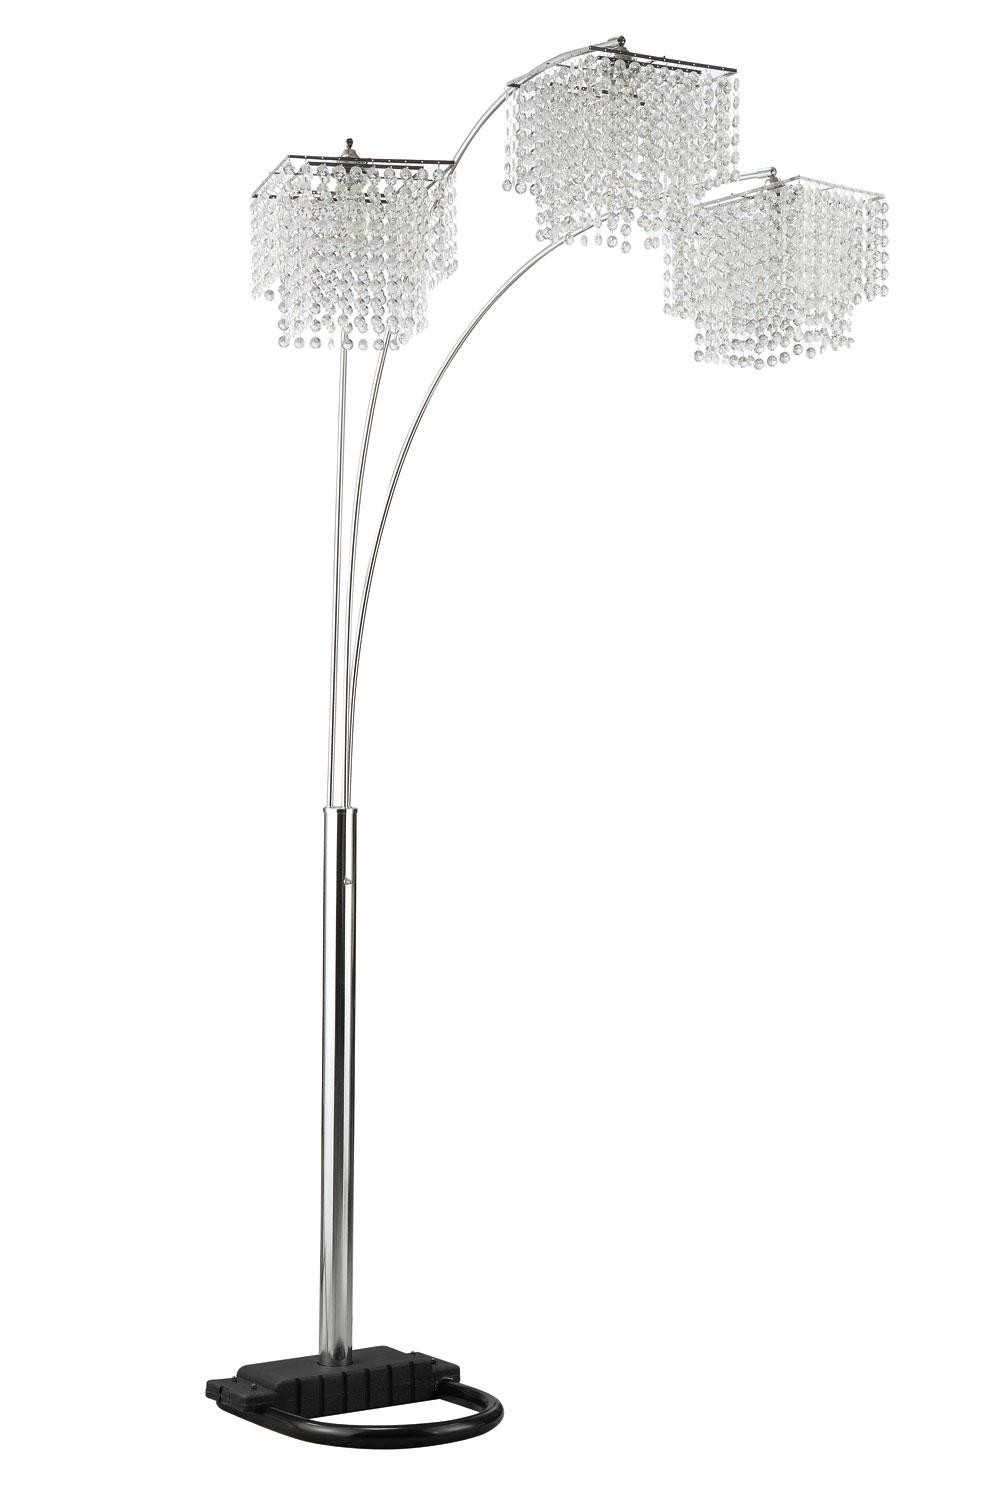 Lights Cool Floor Lamp Design With Luxury Crystal Floor Lamp Inside Tall Standing Chandelier Lamps (Image 14 of 25)